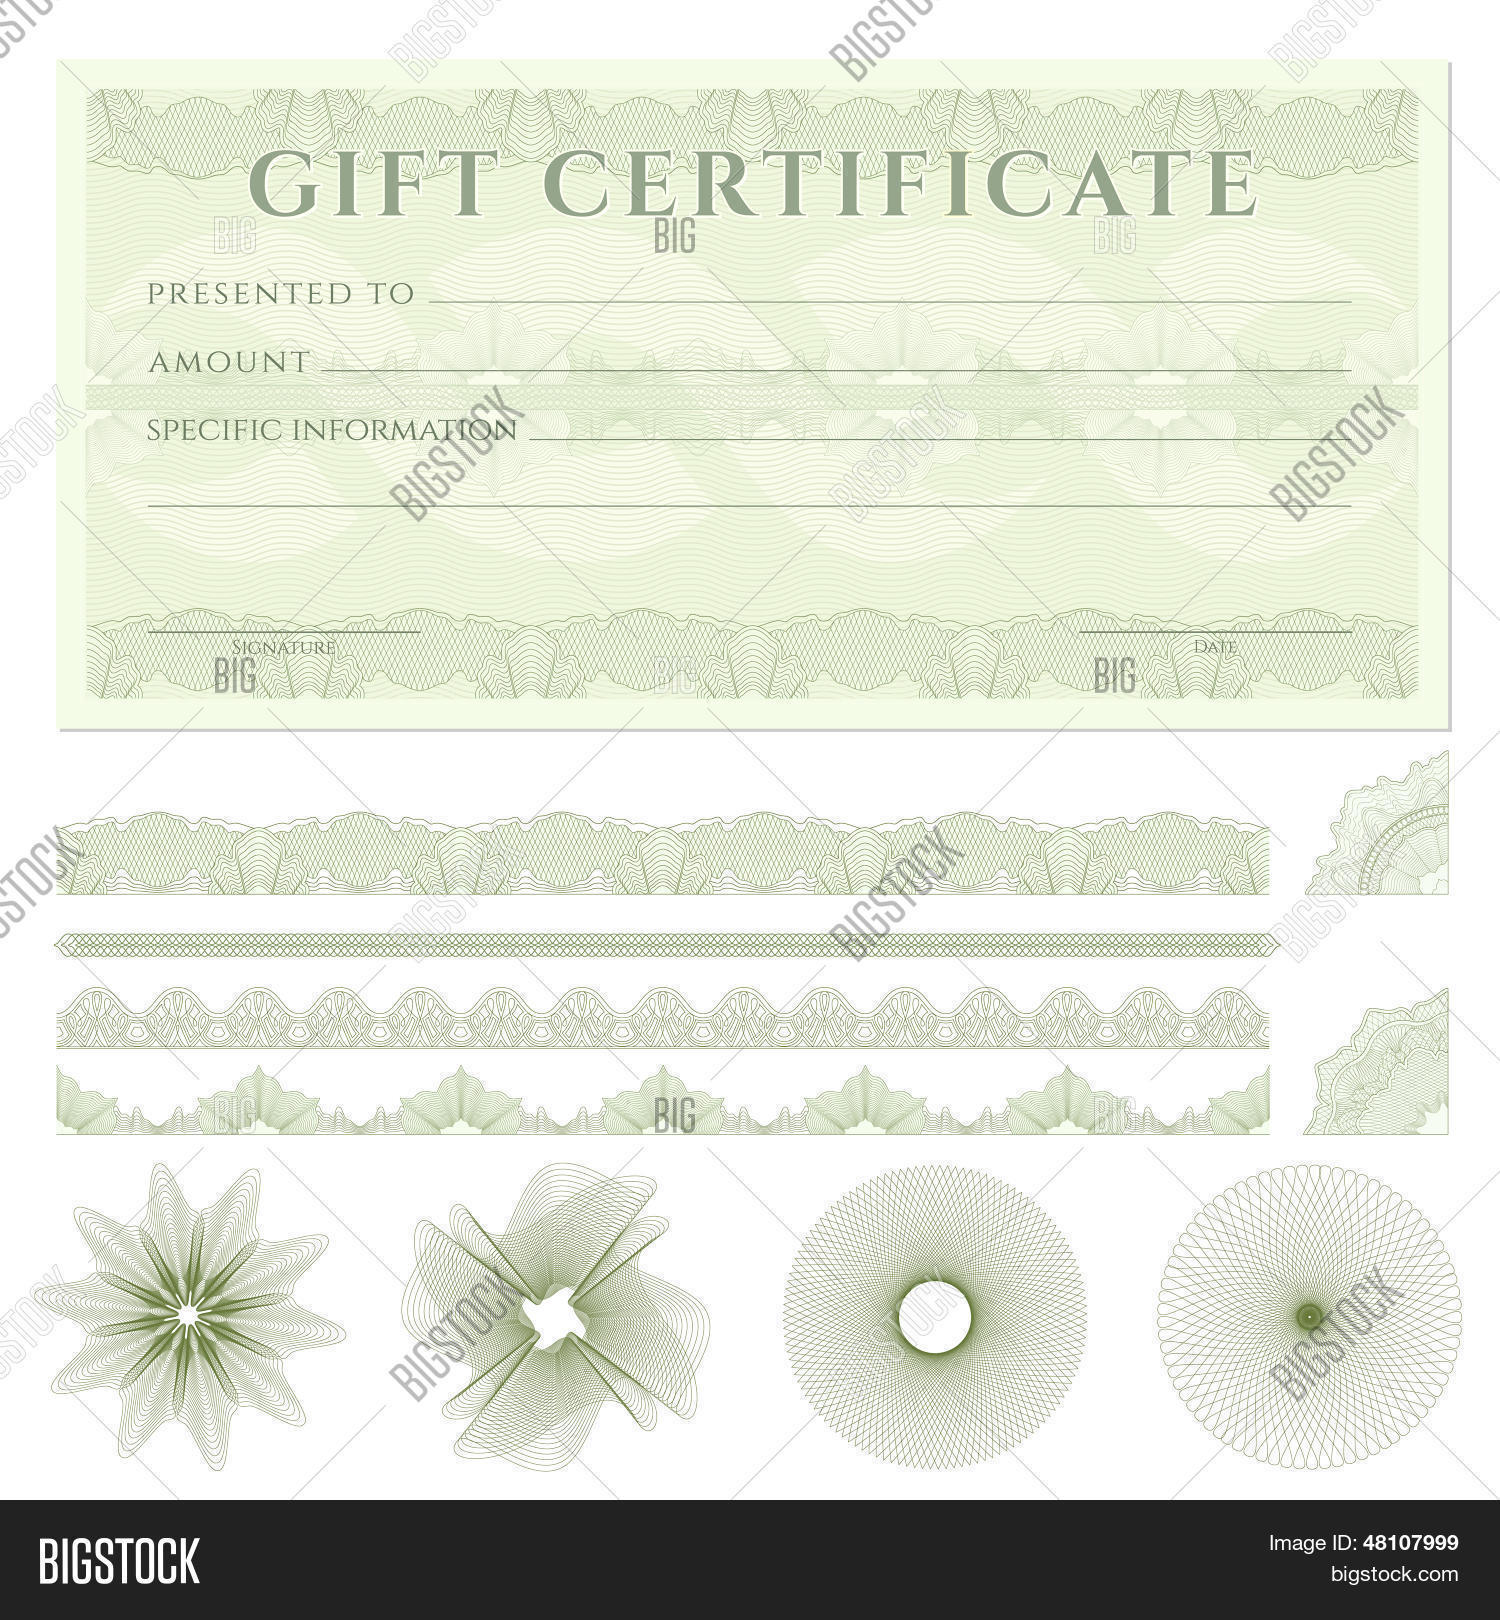 Gift certificate voucher coupon vector photo bigstock gift certificate voucher coupon template banknote money currency cheque pronofoot35fo Gallery